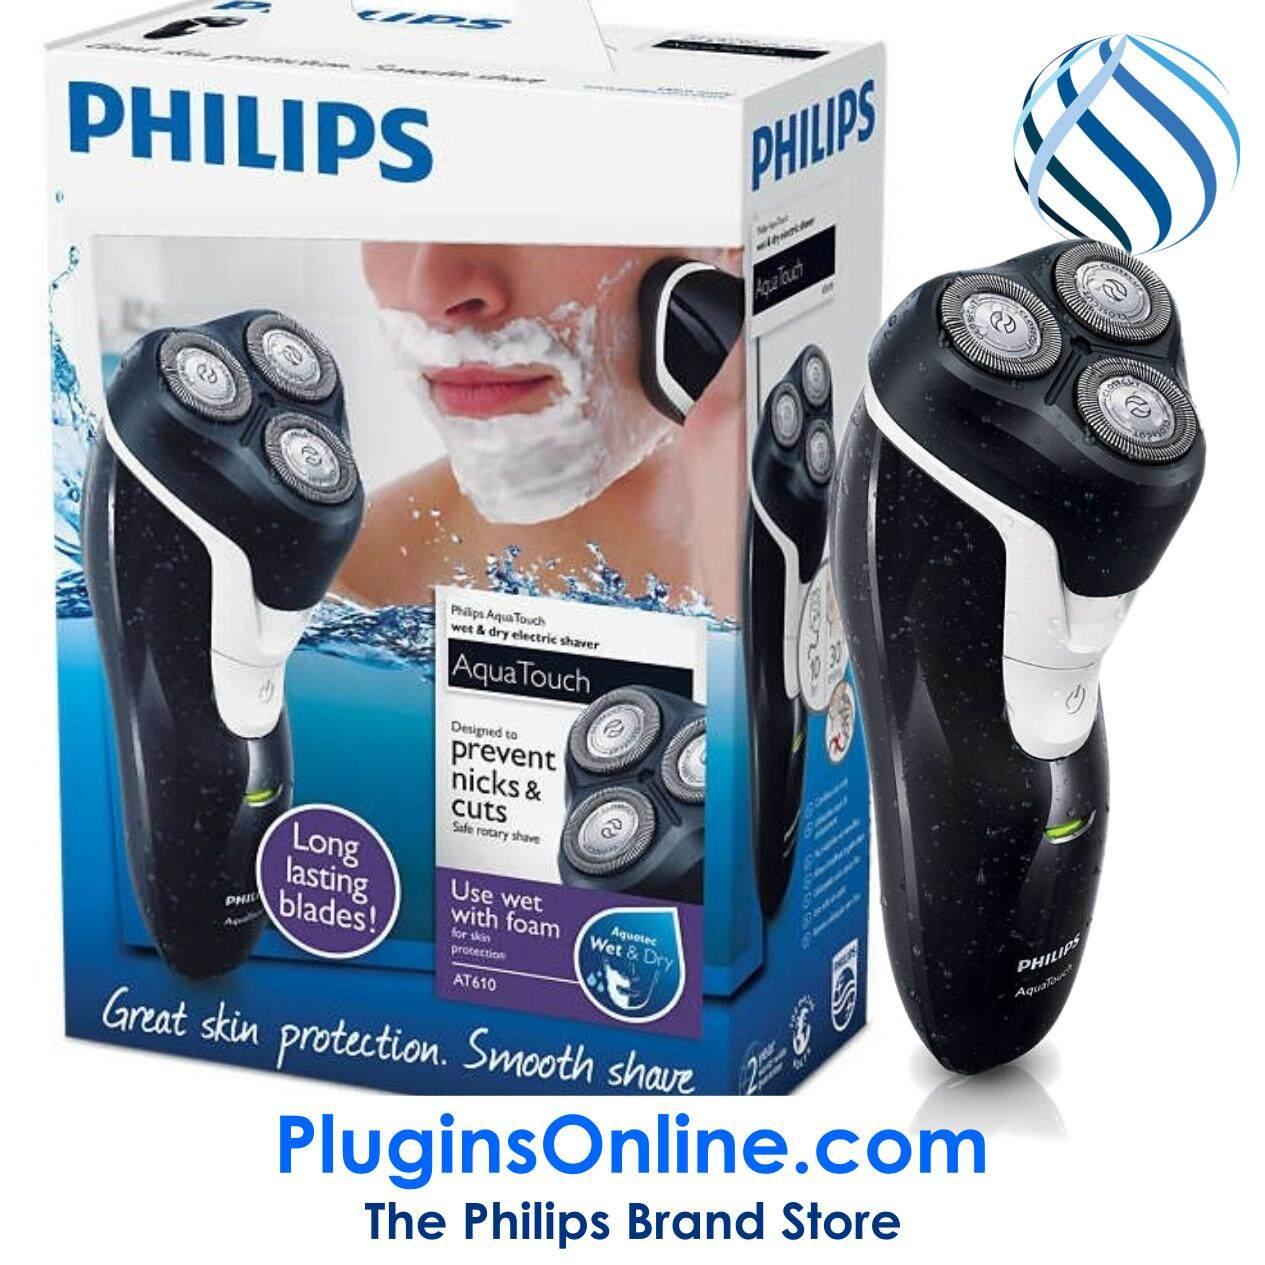 Philips AT610/14 AquaTouch 100% Waterproof Electric Shaver, Wet & Dry (AT610)